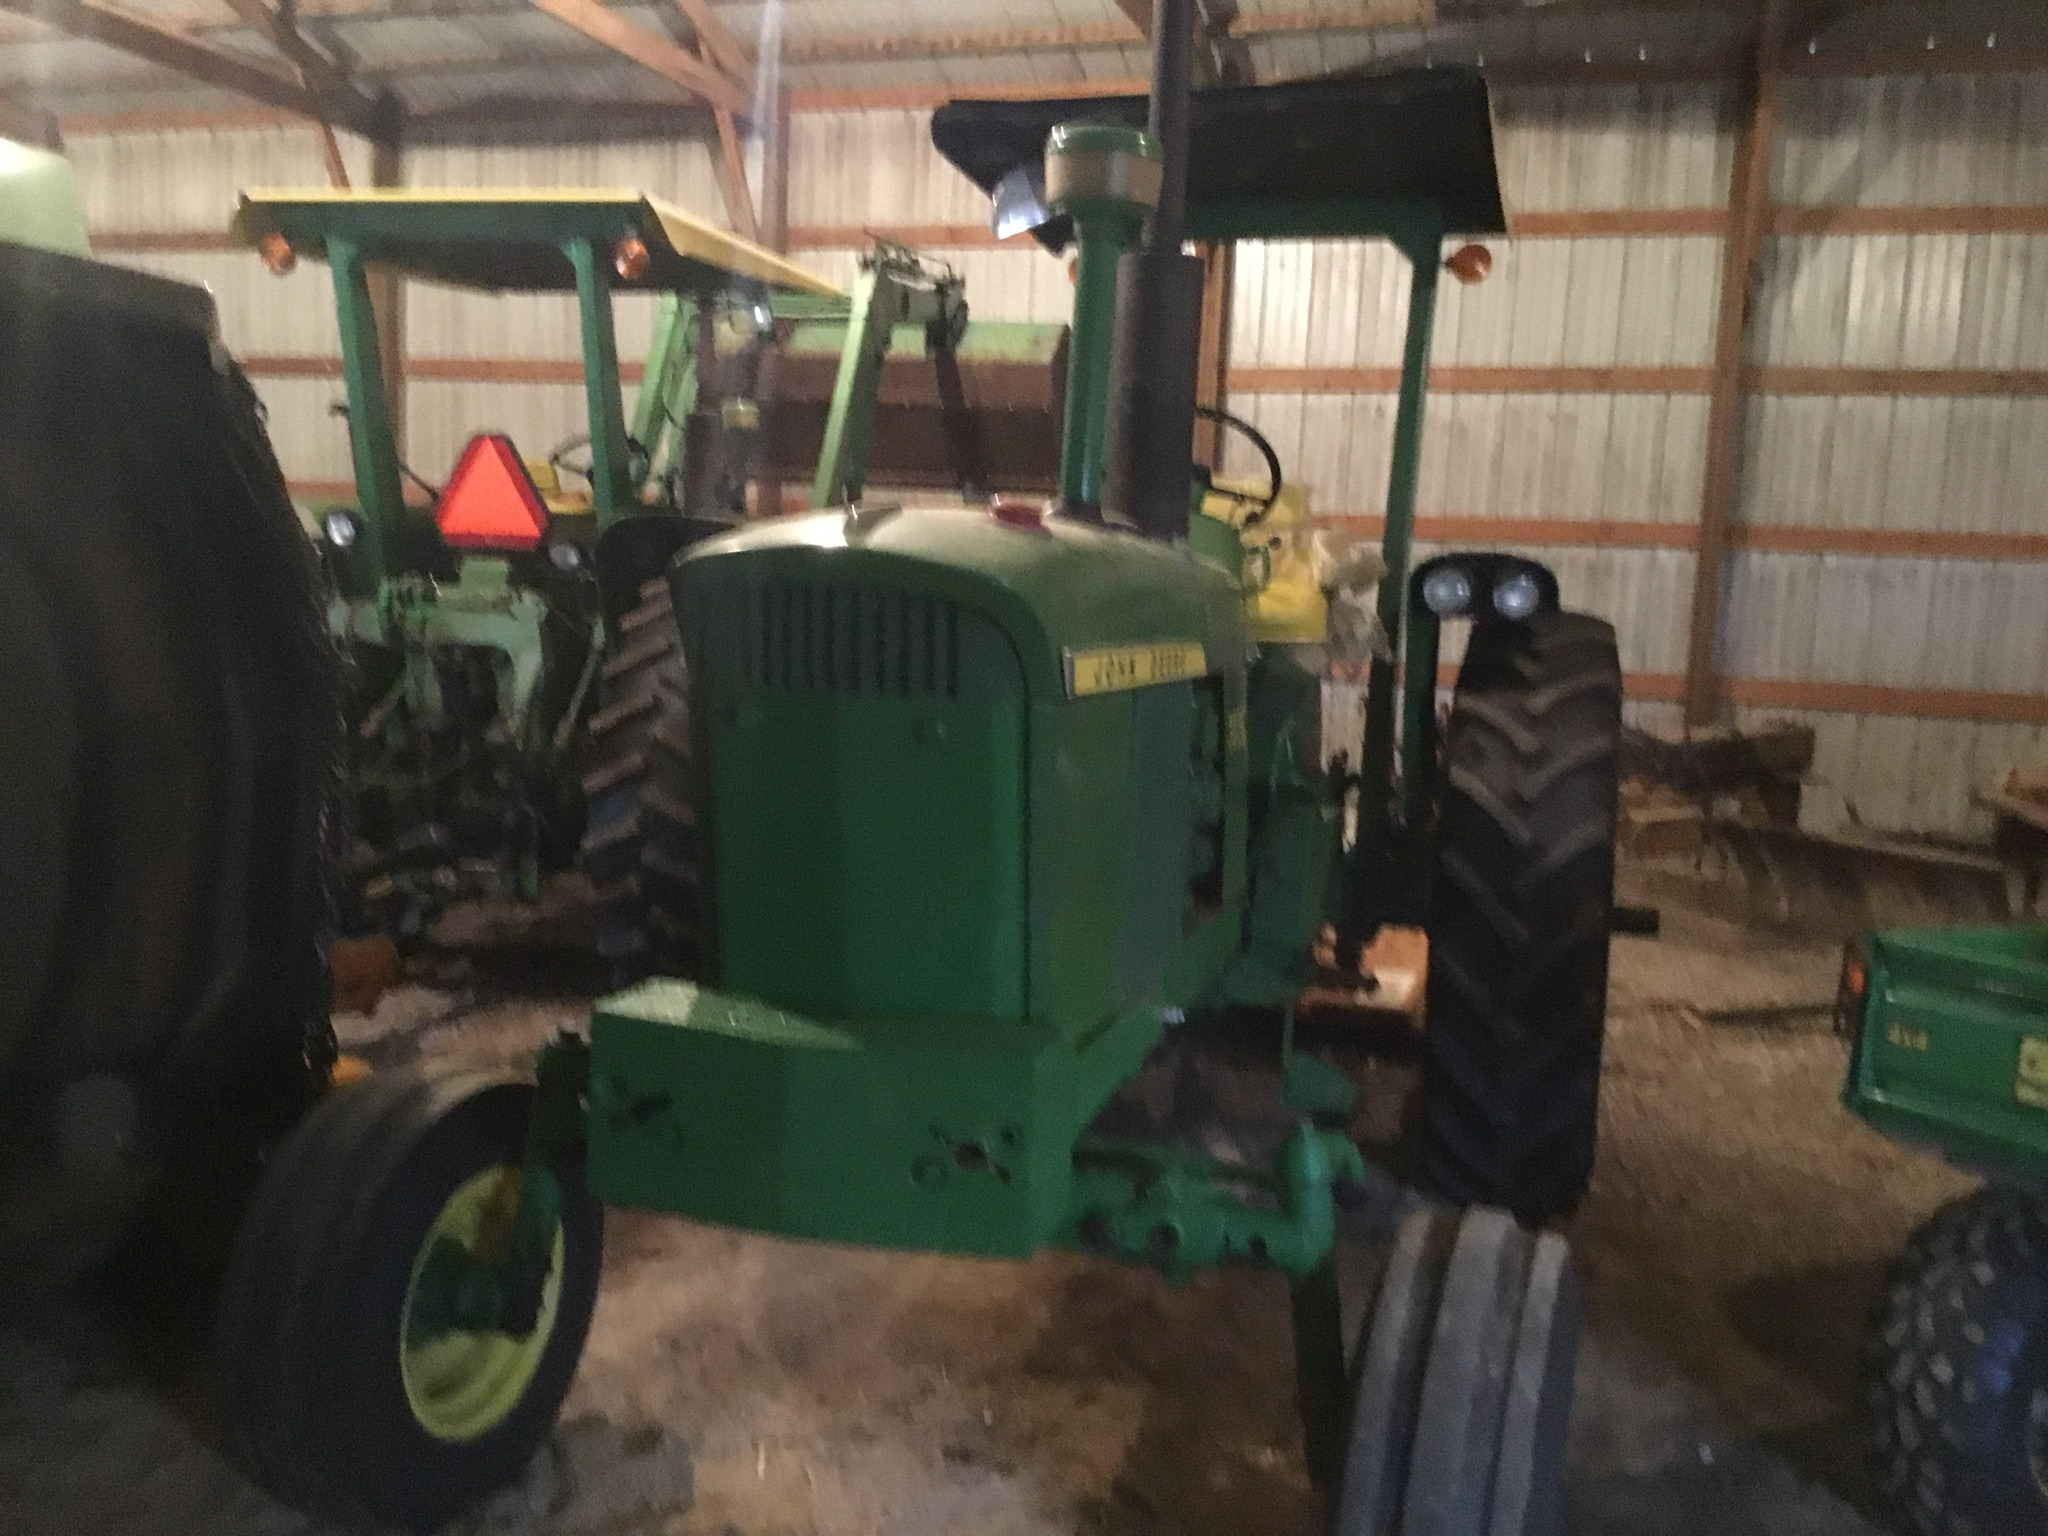 1966 John Deere 3020 Gas, JD Wide Front, Synchro Range, Roll Bar & Canopy, Dual Hydraulic Remotes, - Image 12 of 13